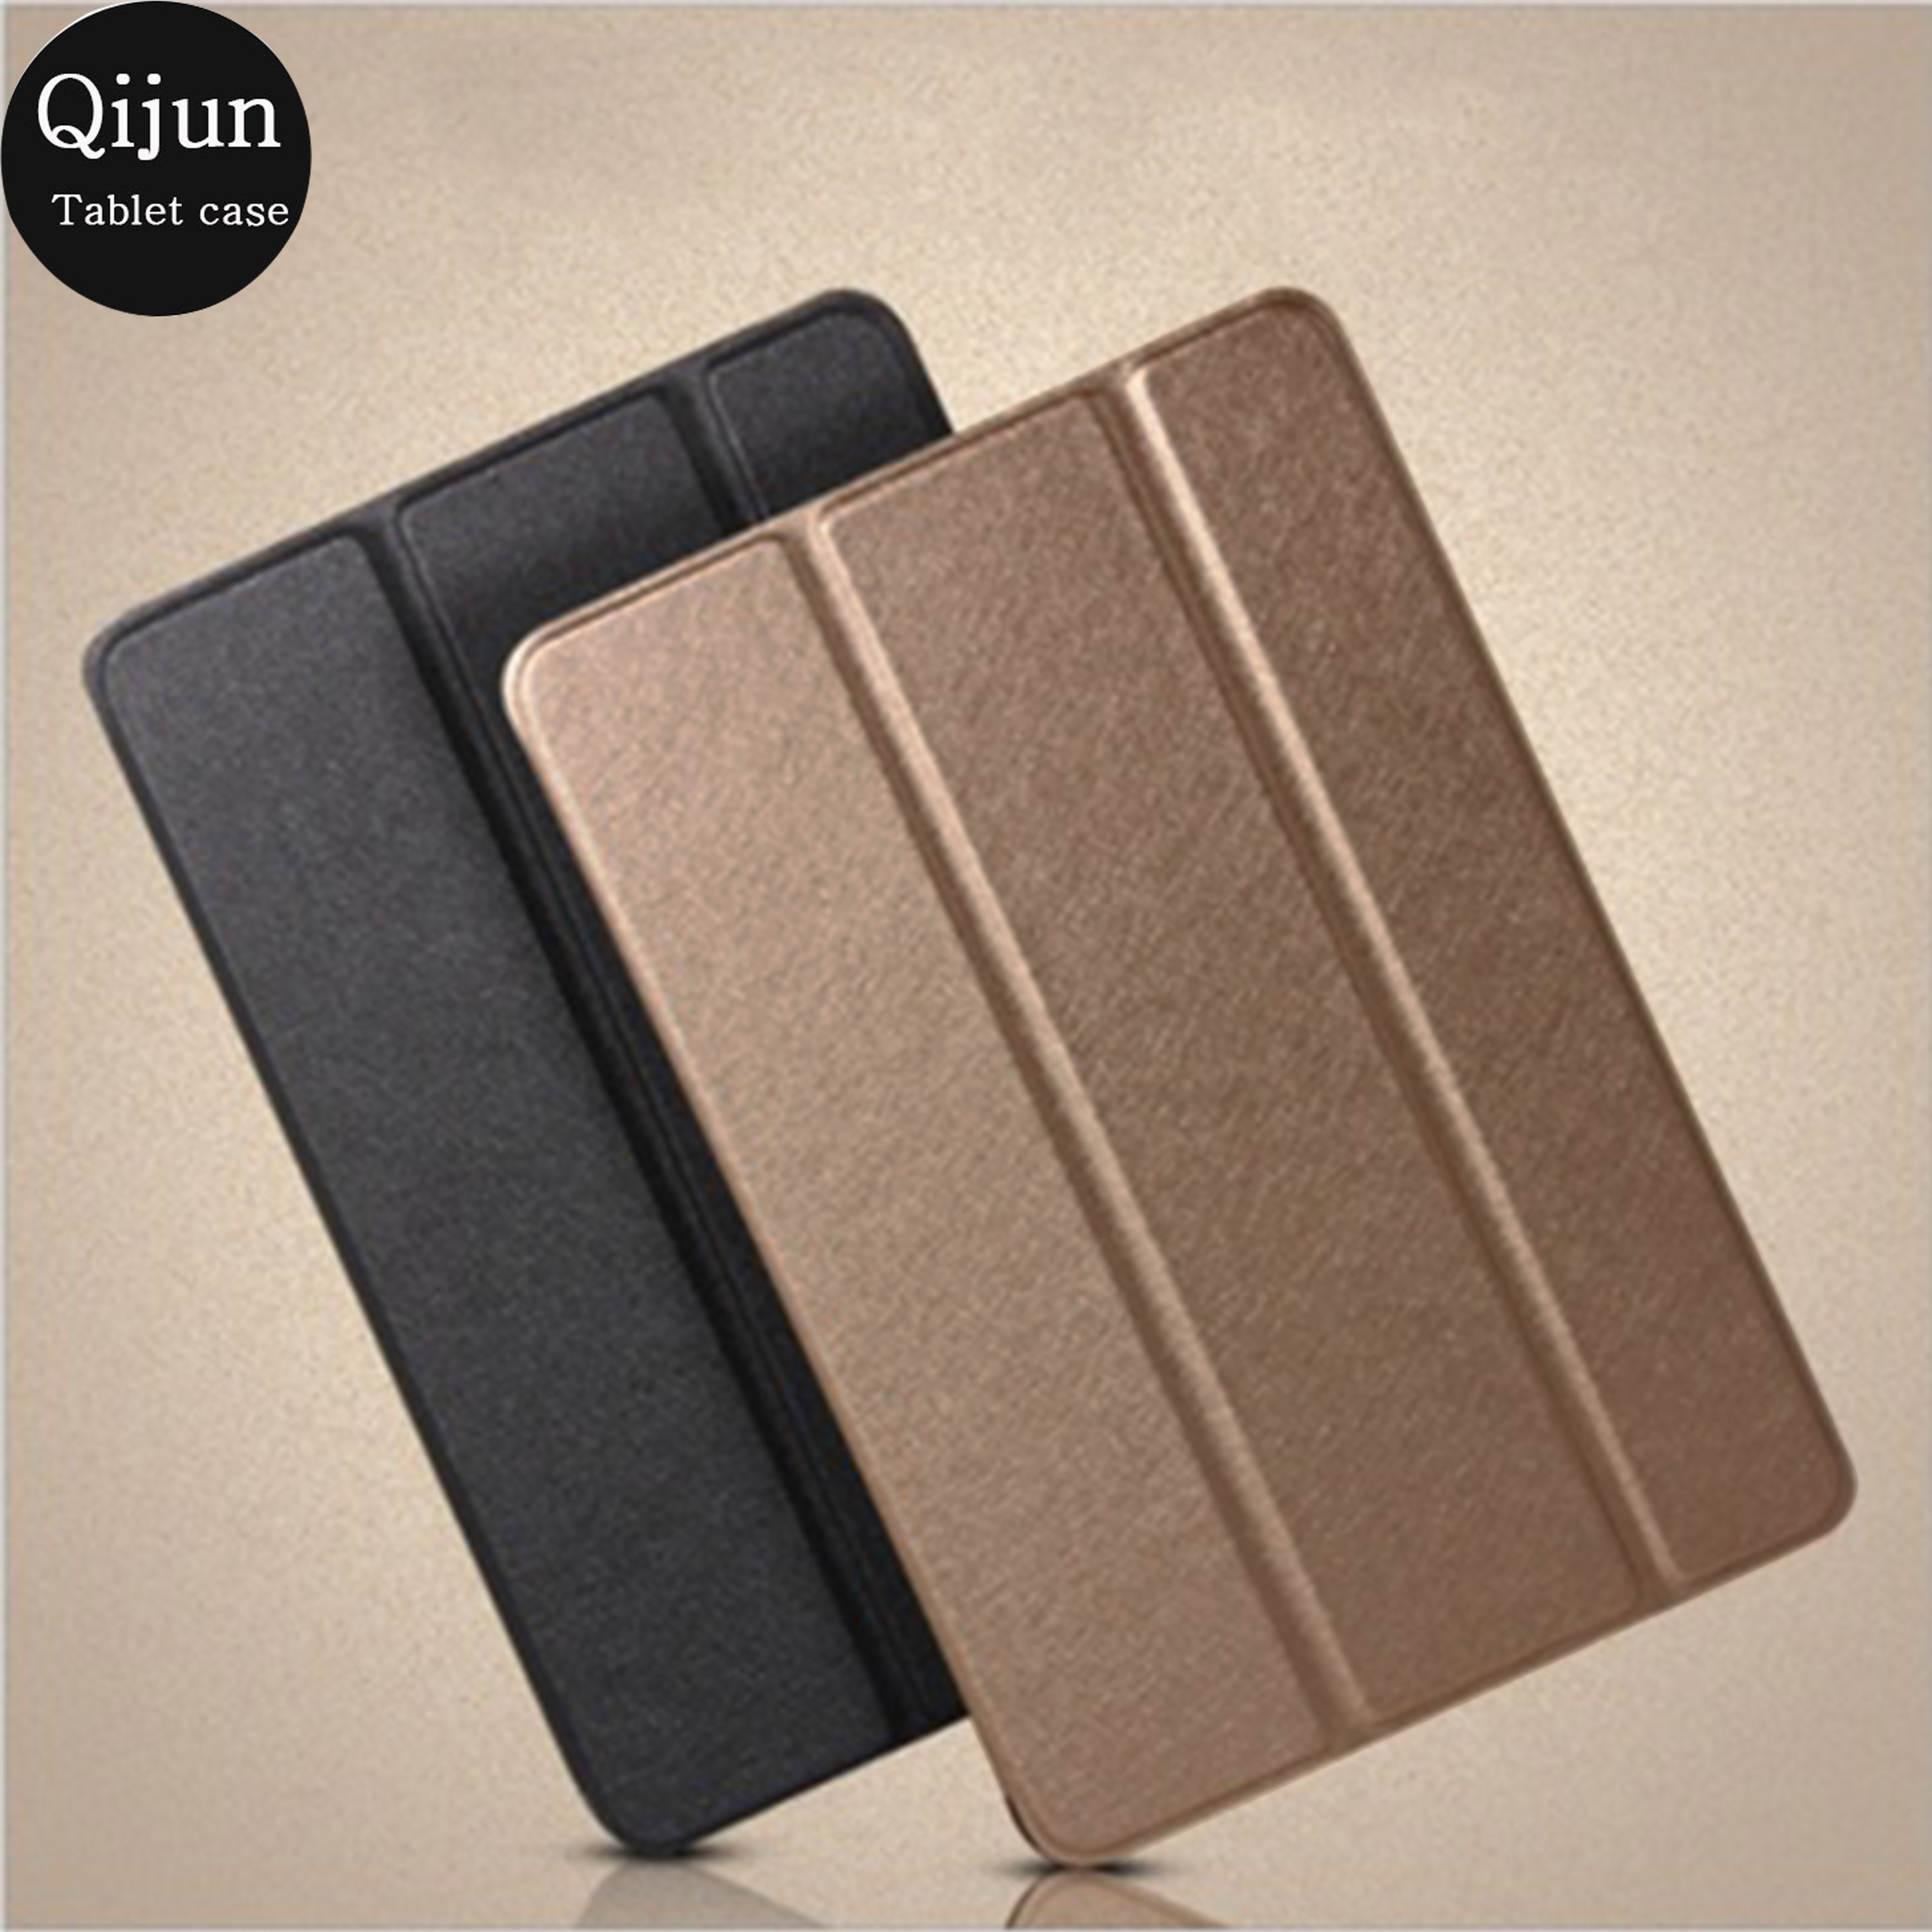 New For Samusng Galaxy Tab A 8.0 Inch (2019) T295 T297 SM-T290 Case Smart Magnetic Fundas Flip Tablet Cover Stand Shell Cover